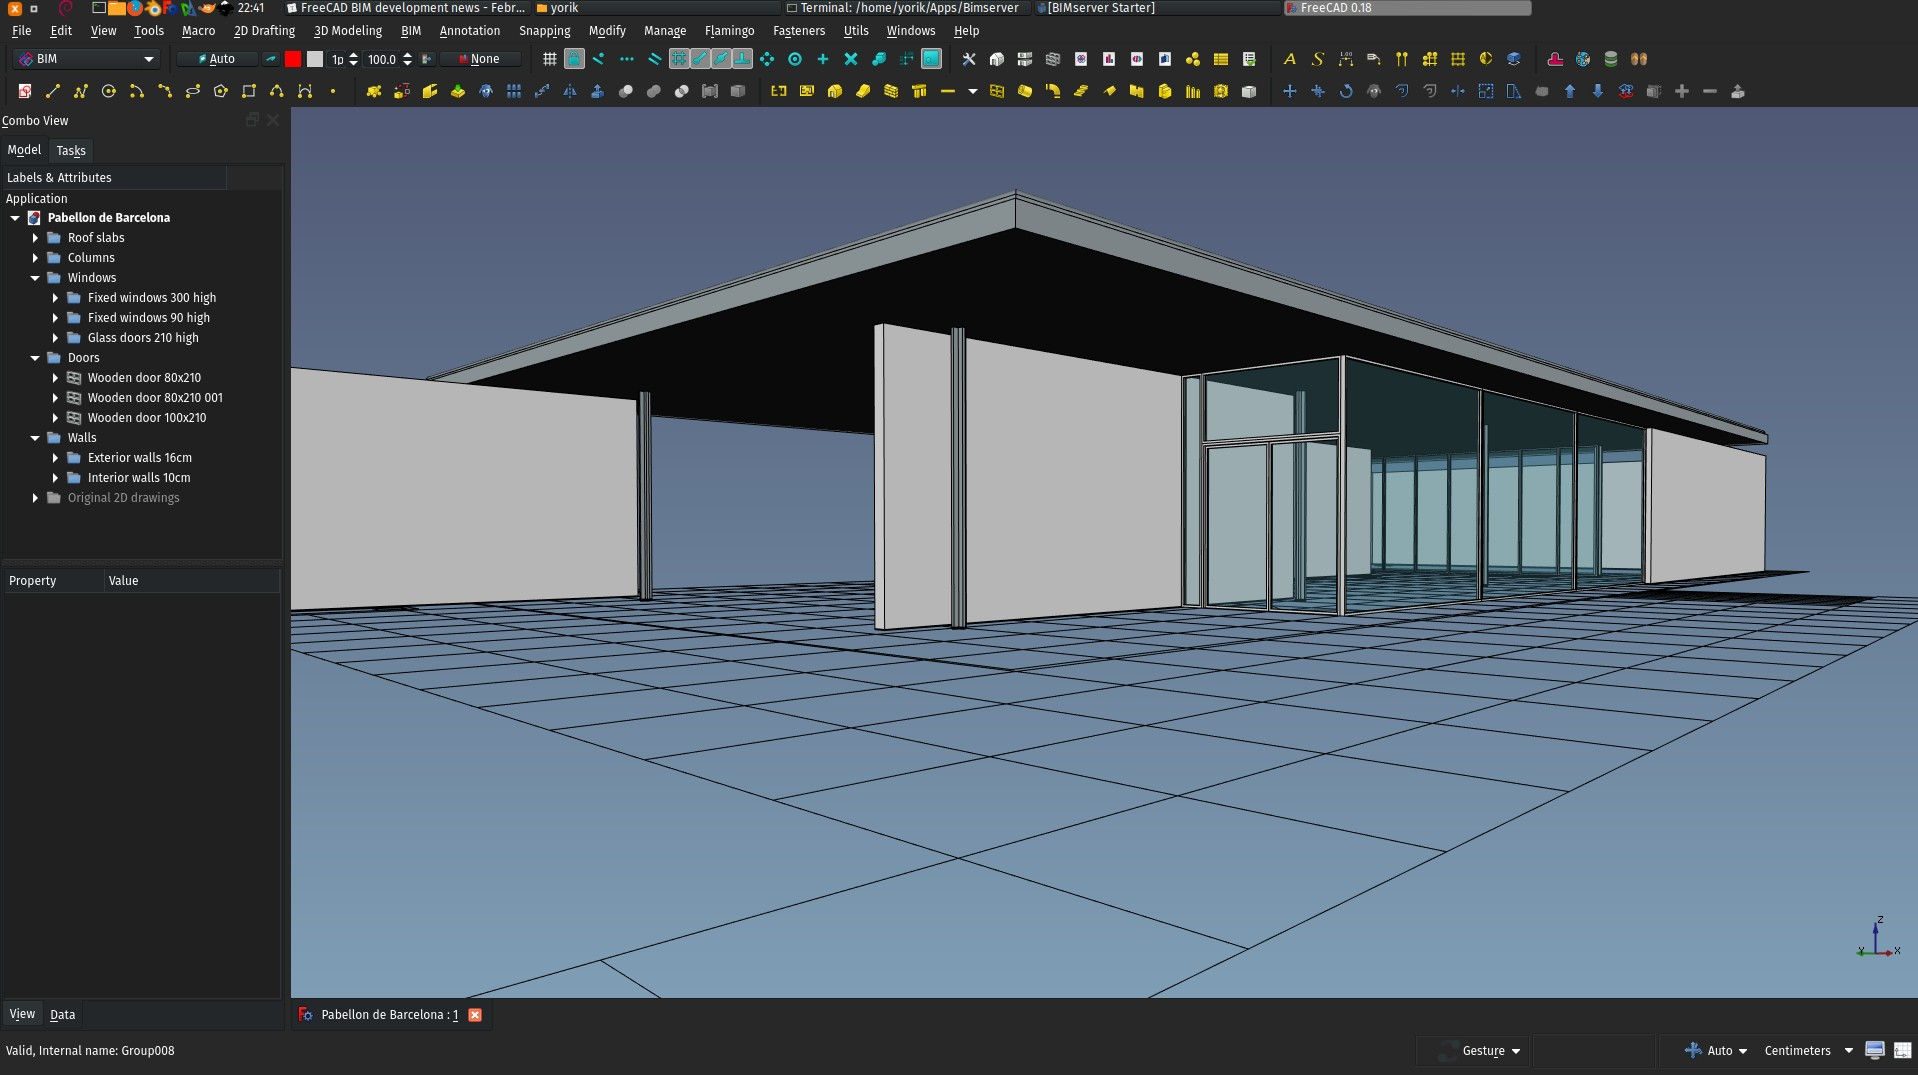 The Barcelona pavillon in FreeCAD